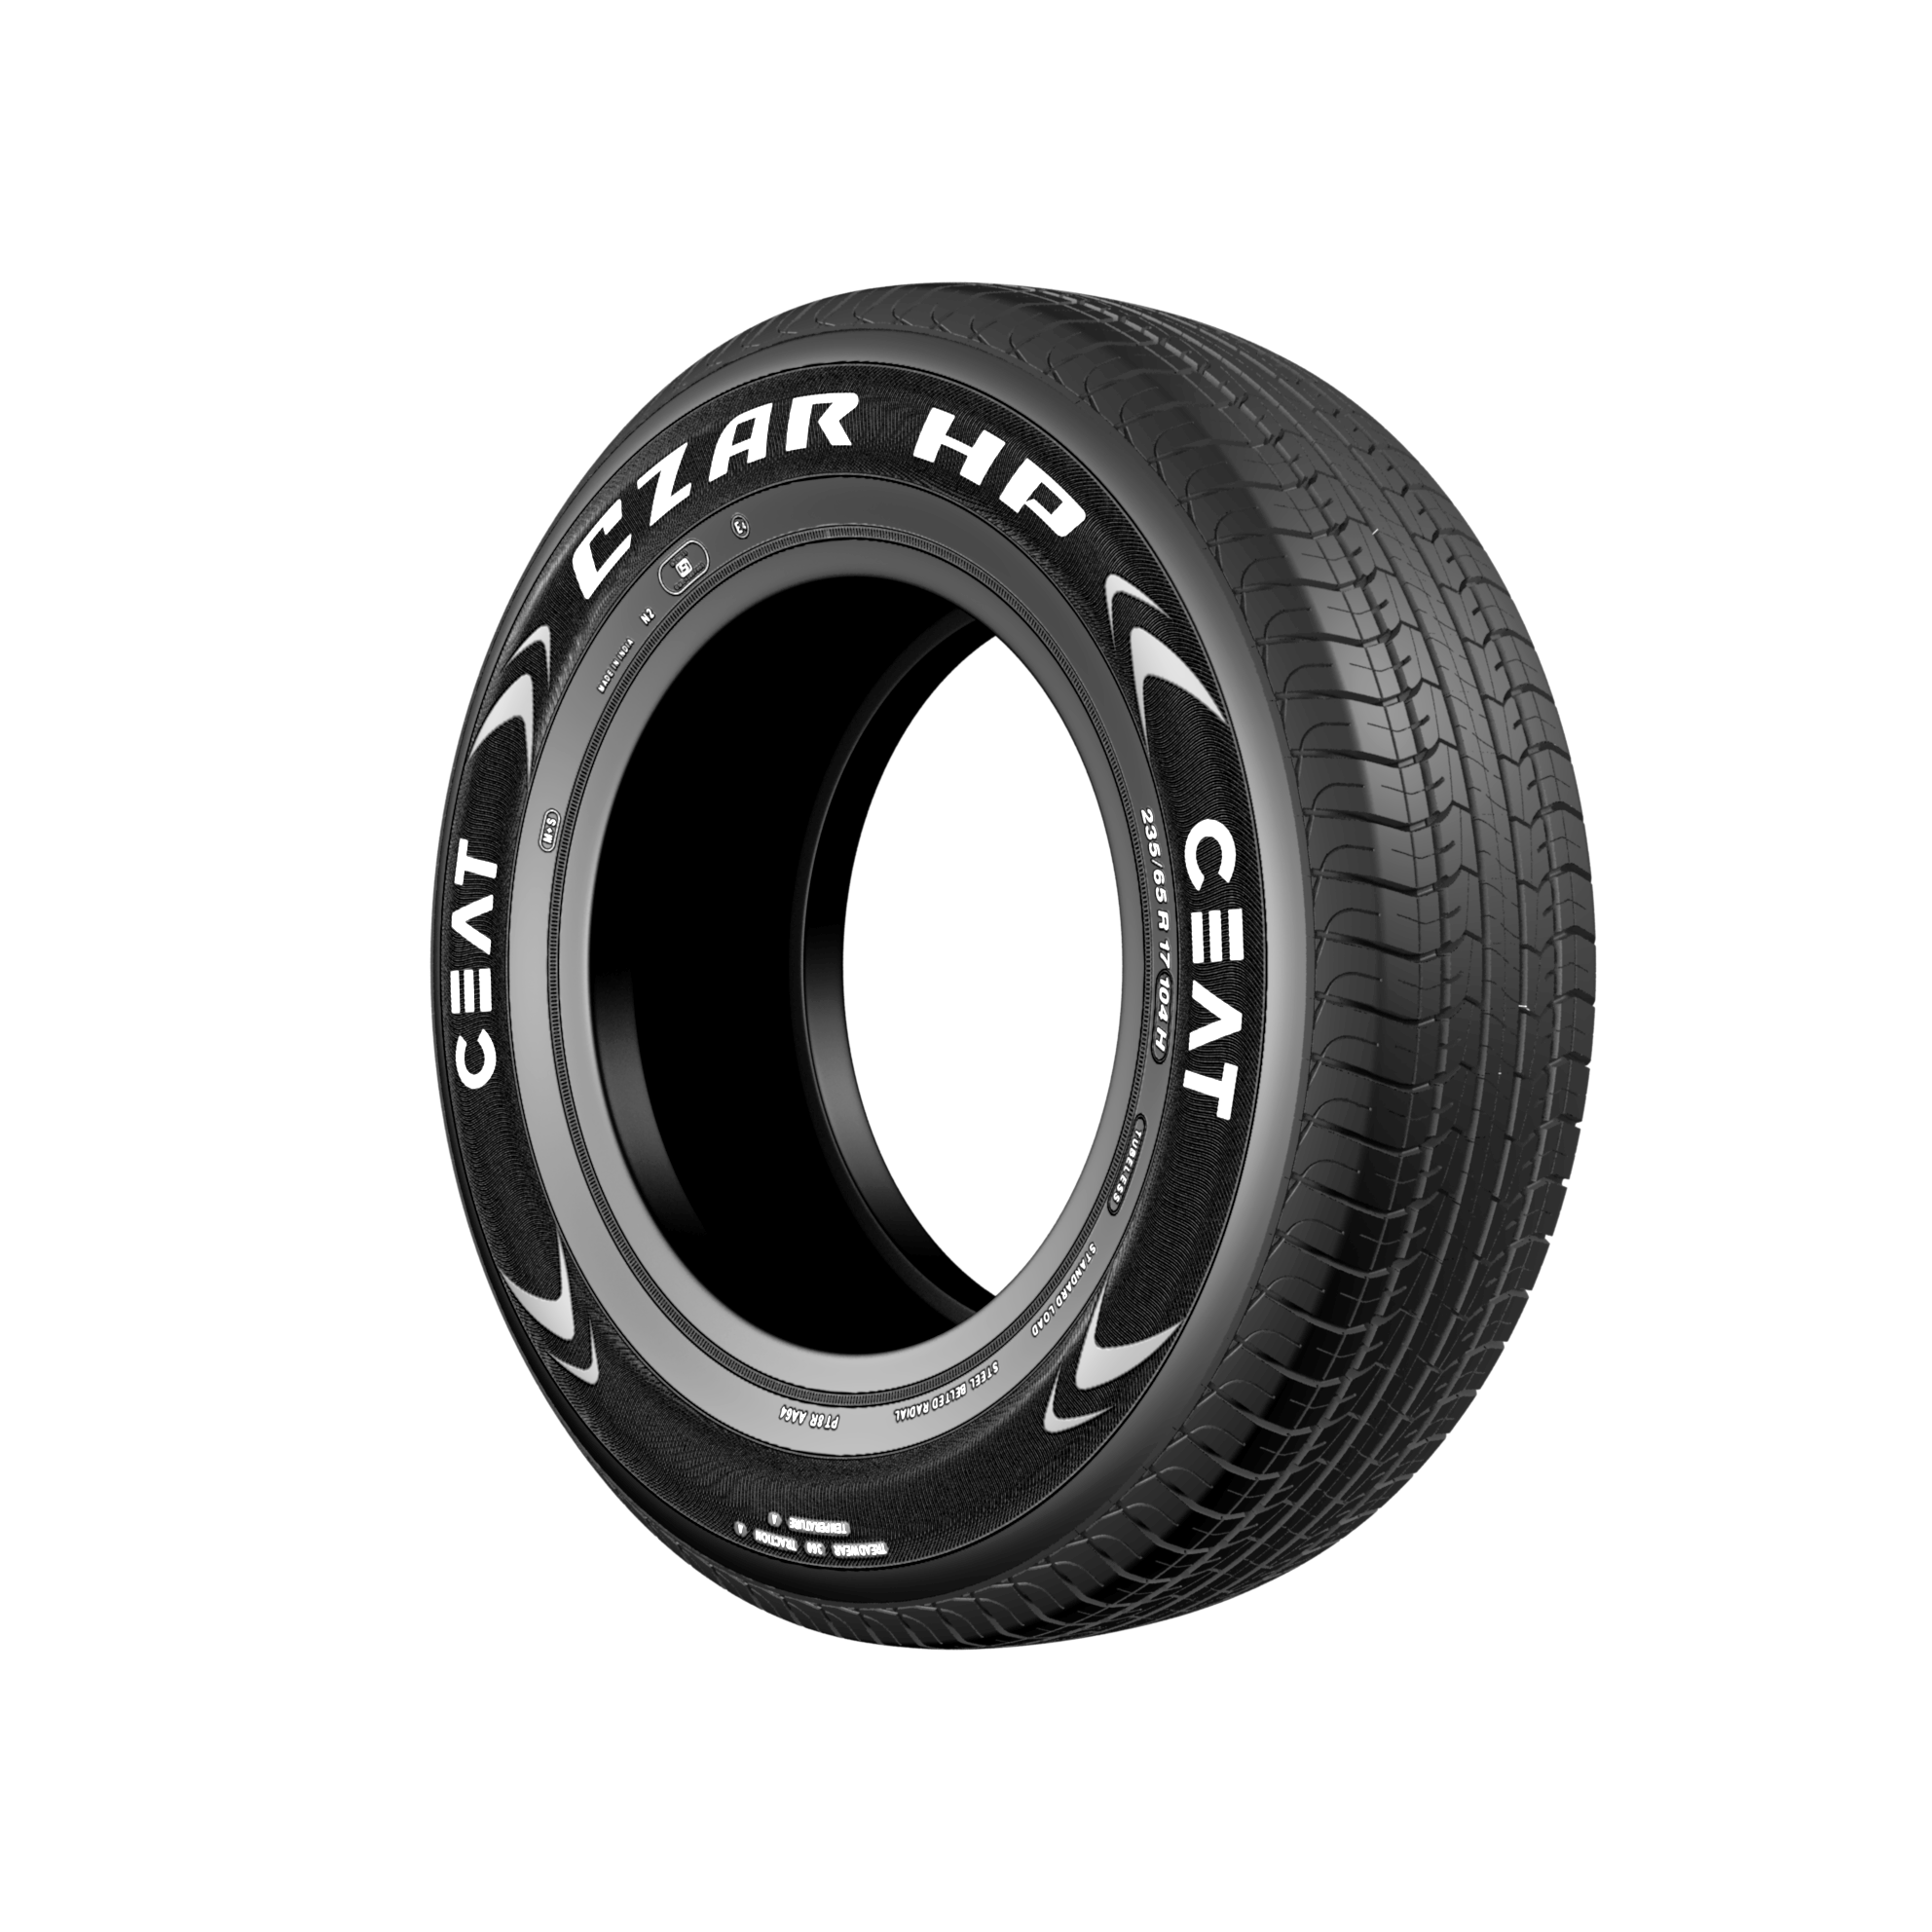 Ceat Czar HP 205/60 R 16 Tubeless 92 H Car Tyre